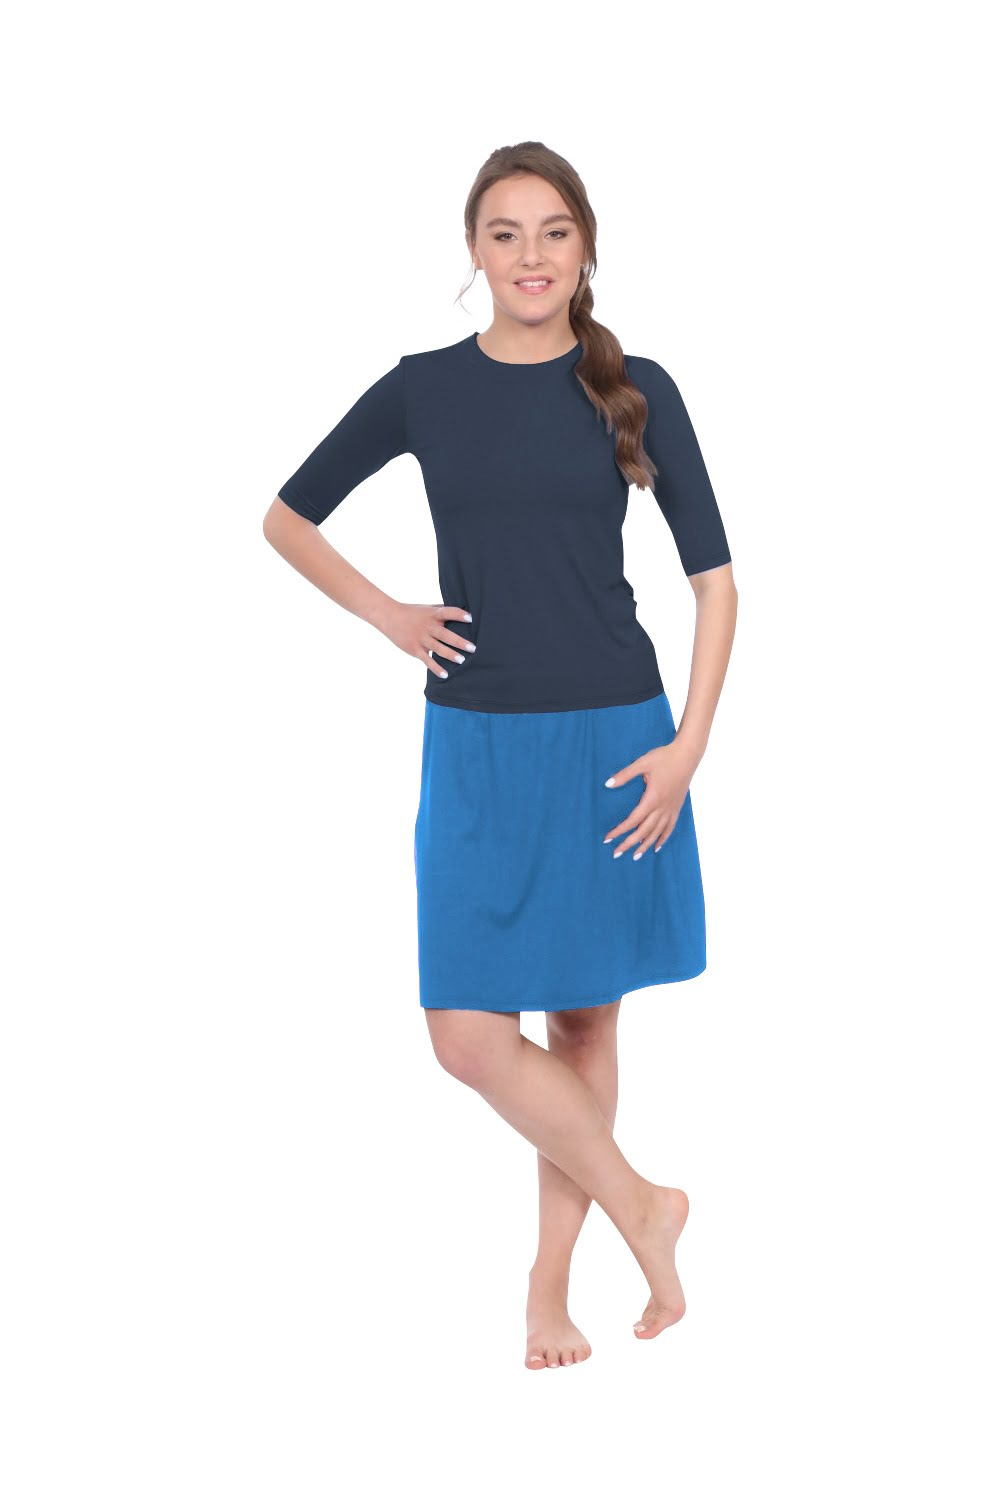 f159d25a0cc03 Running Skirt with Built-in Shorts. Kosher Casual.